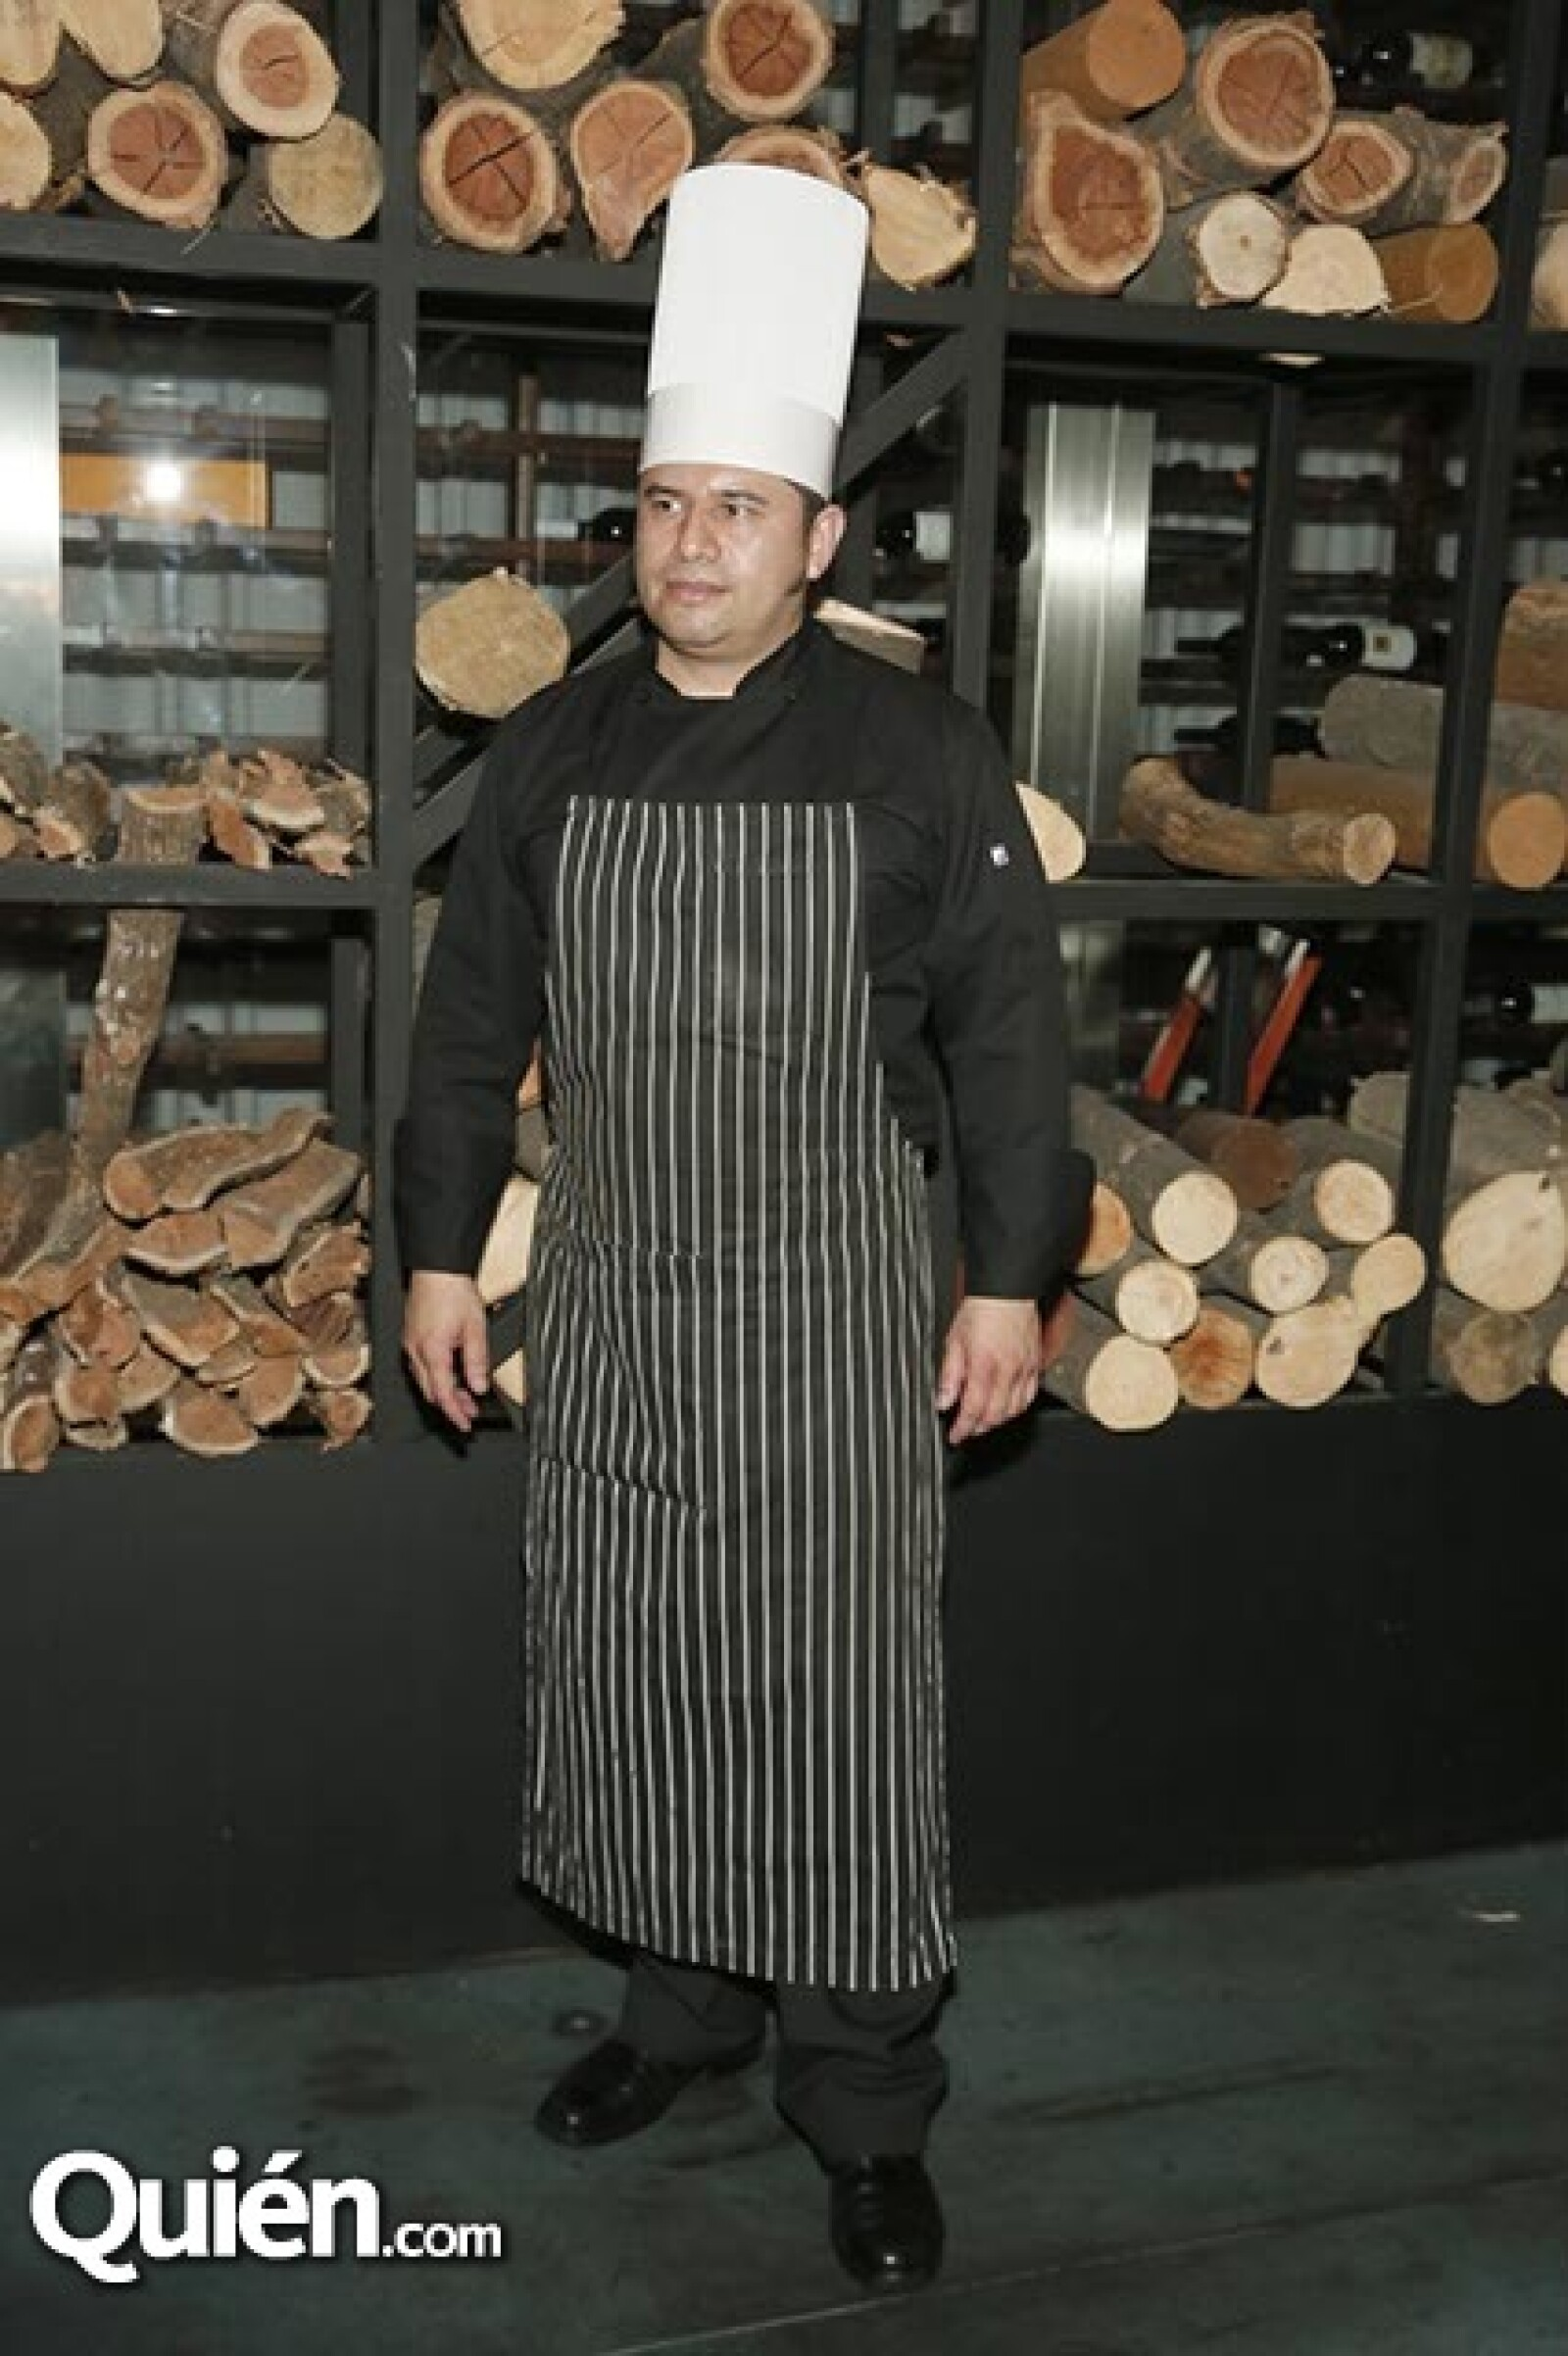 Chef Vicente Estrada